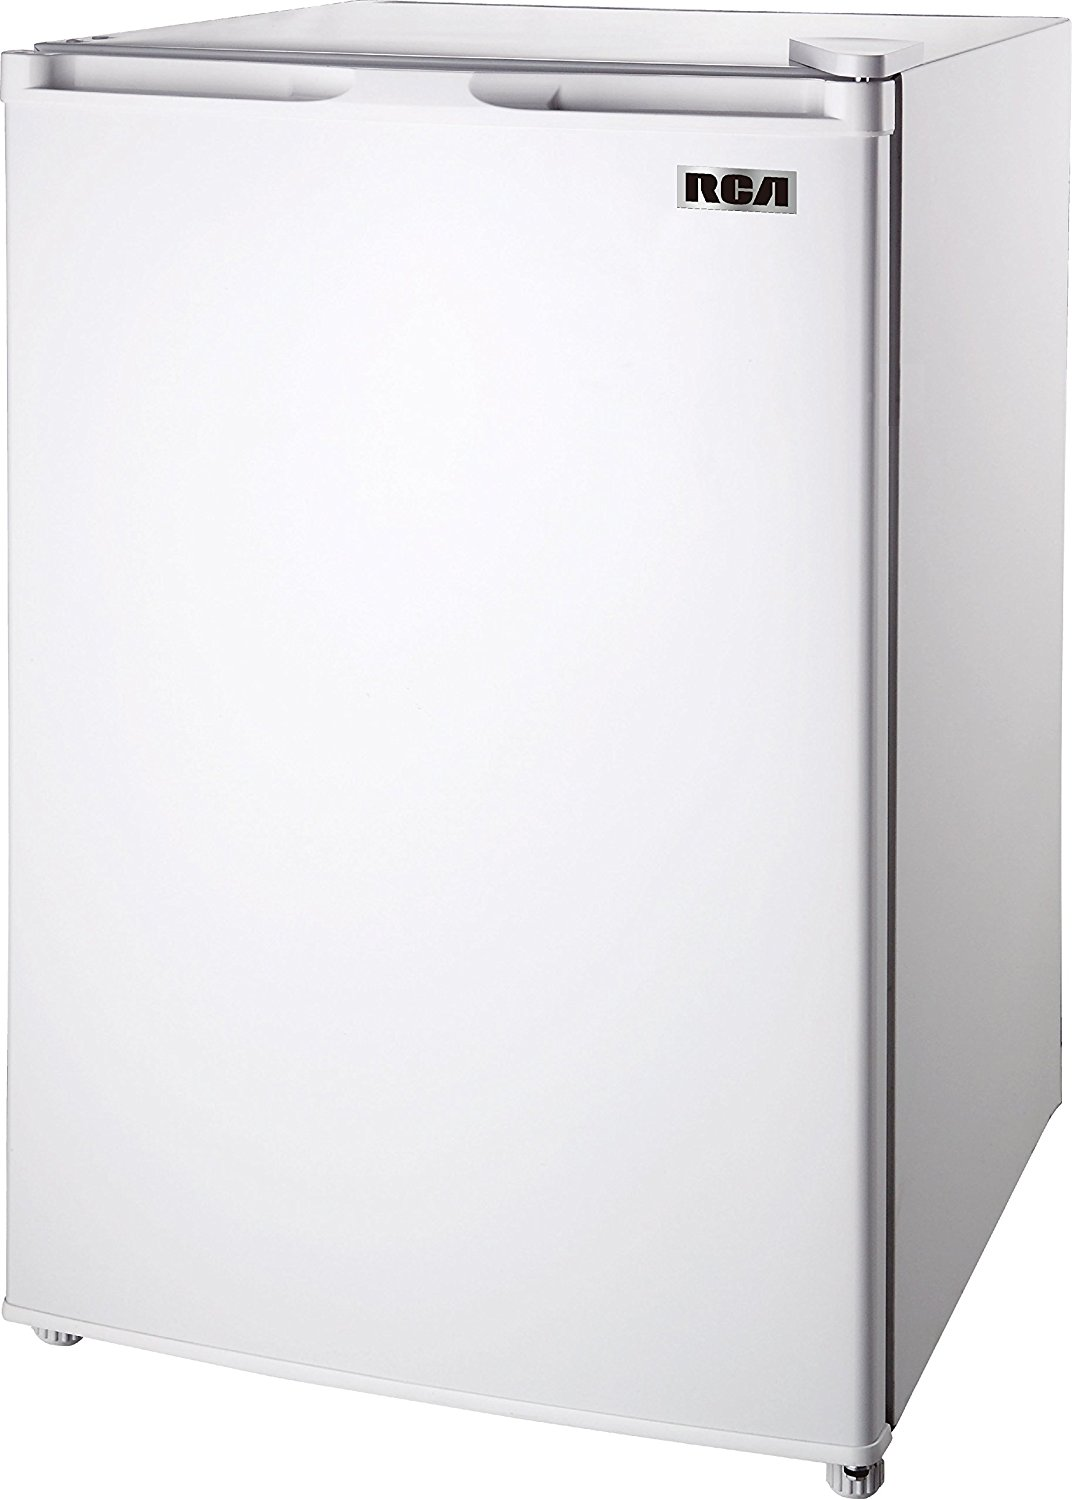 RCA RFR440-White Fridge, 4.5 Cubic Feet, White